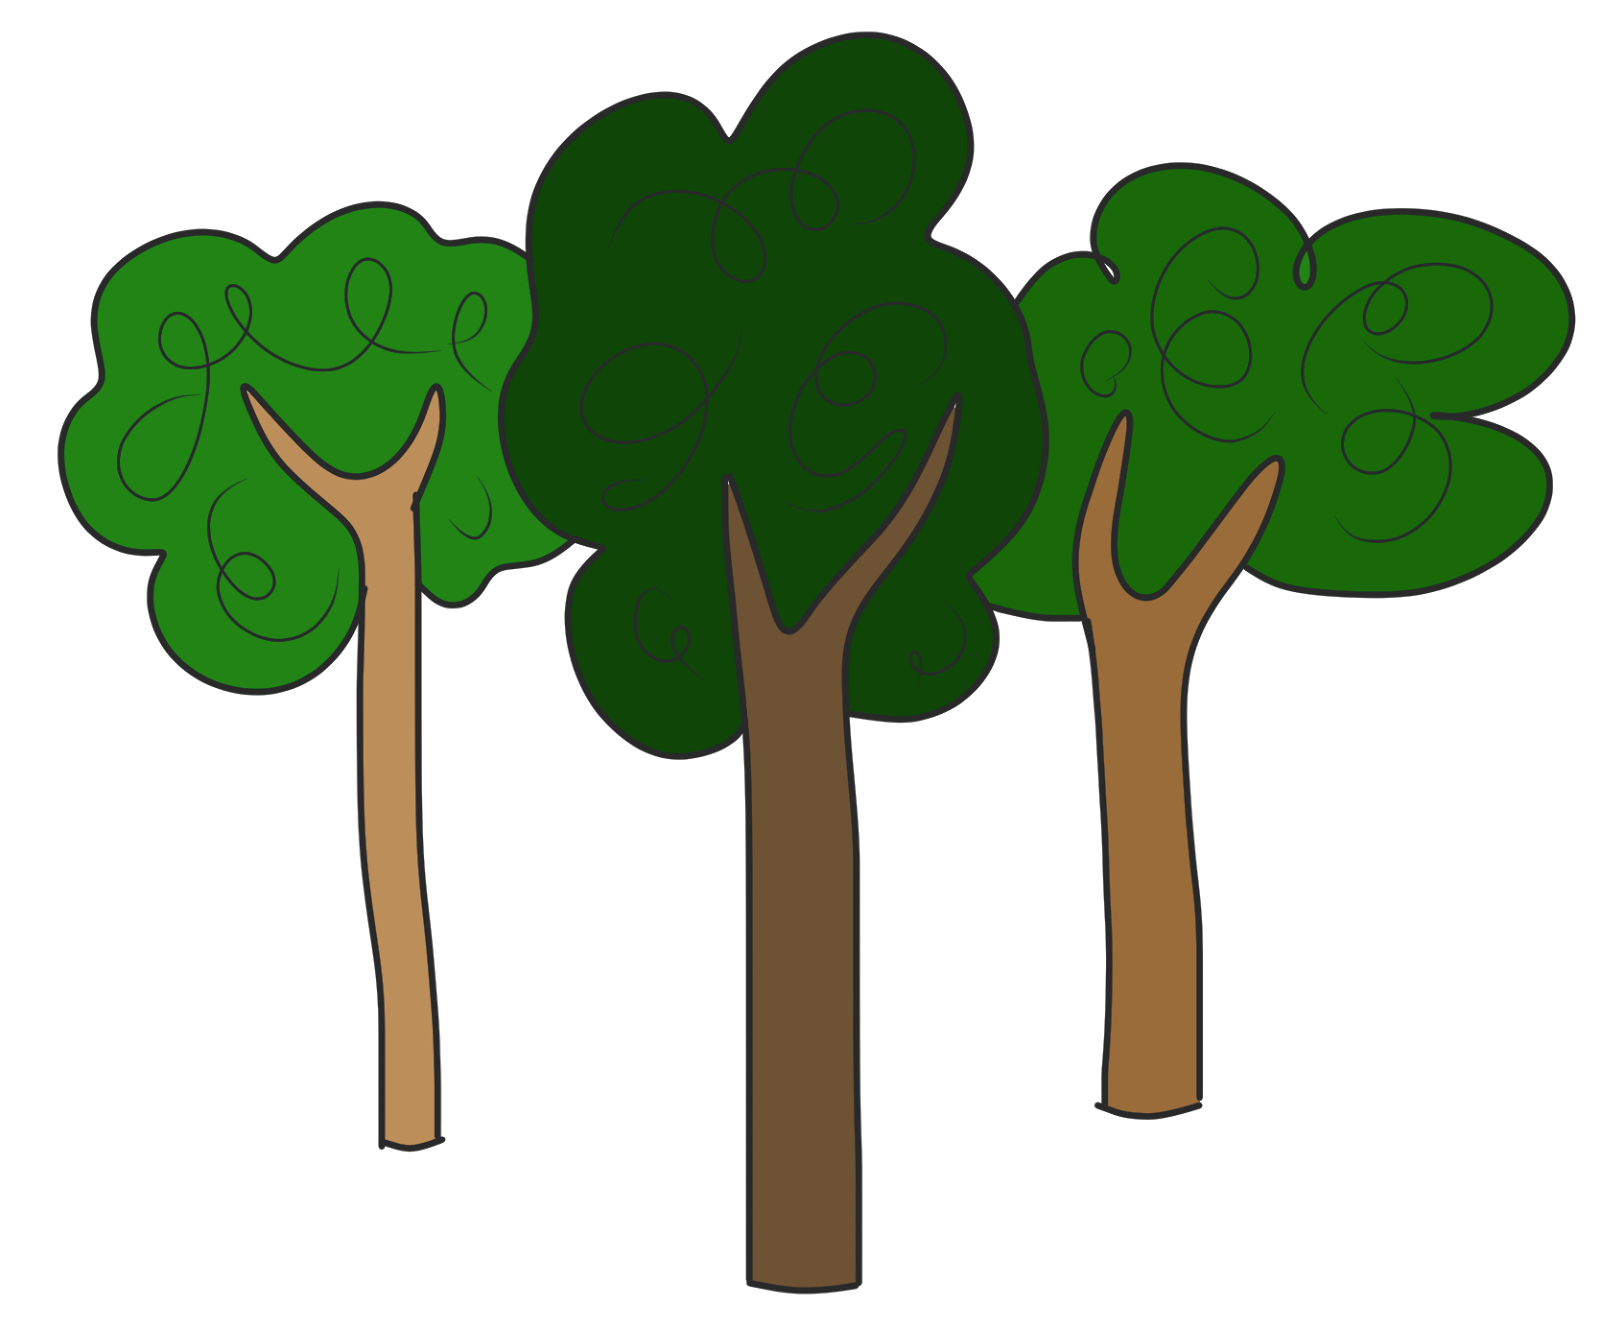 EDUCASONG : {Free} Earth Day Clip Art - ClipArt Best - ClipArt Best